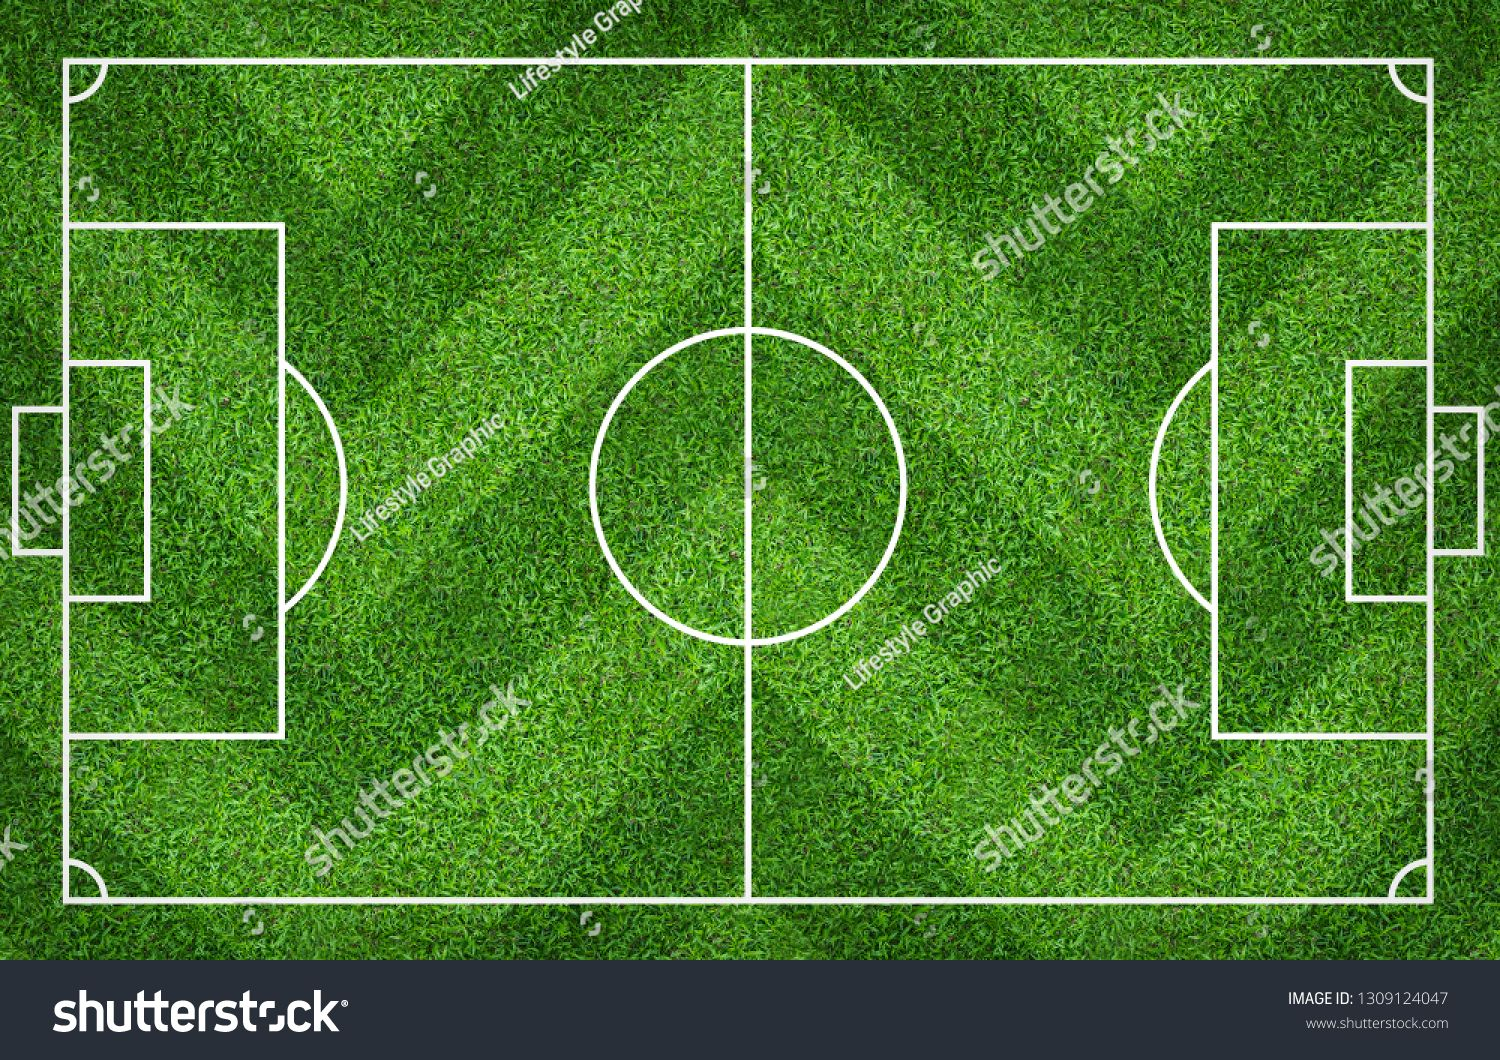 Football Field Or Soccer Field For Background Green Lawn Court For Create Sport Game Ad Spon Background Green Soccer Soccer Field Football Field Field